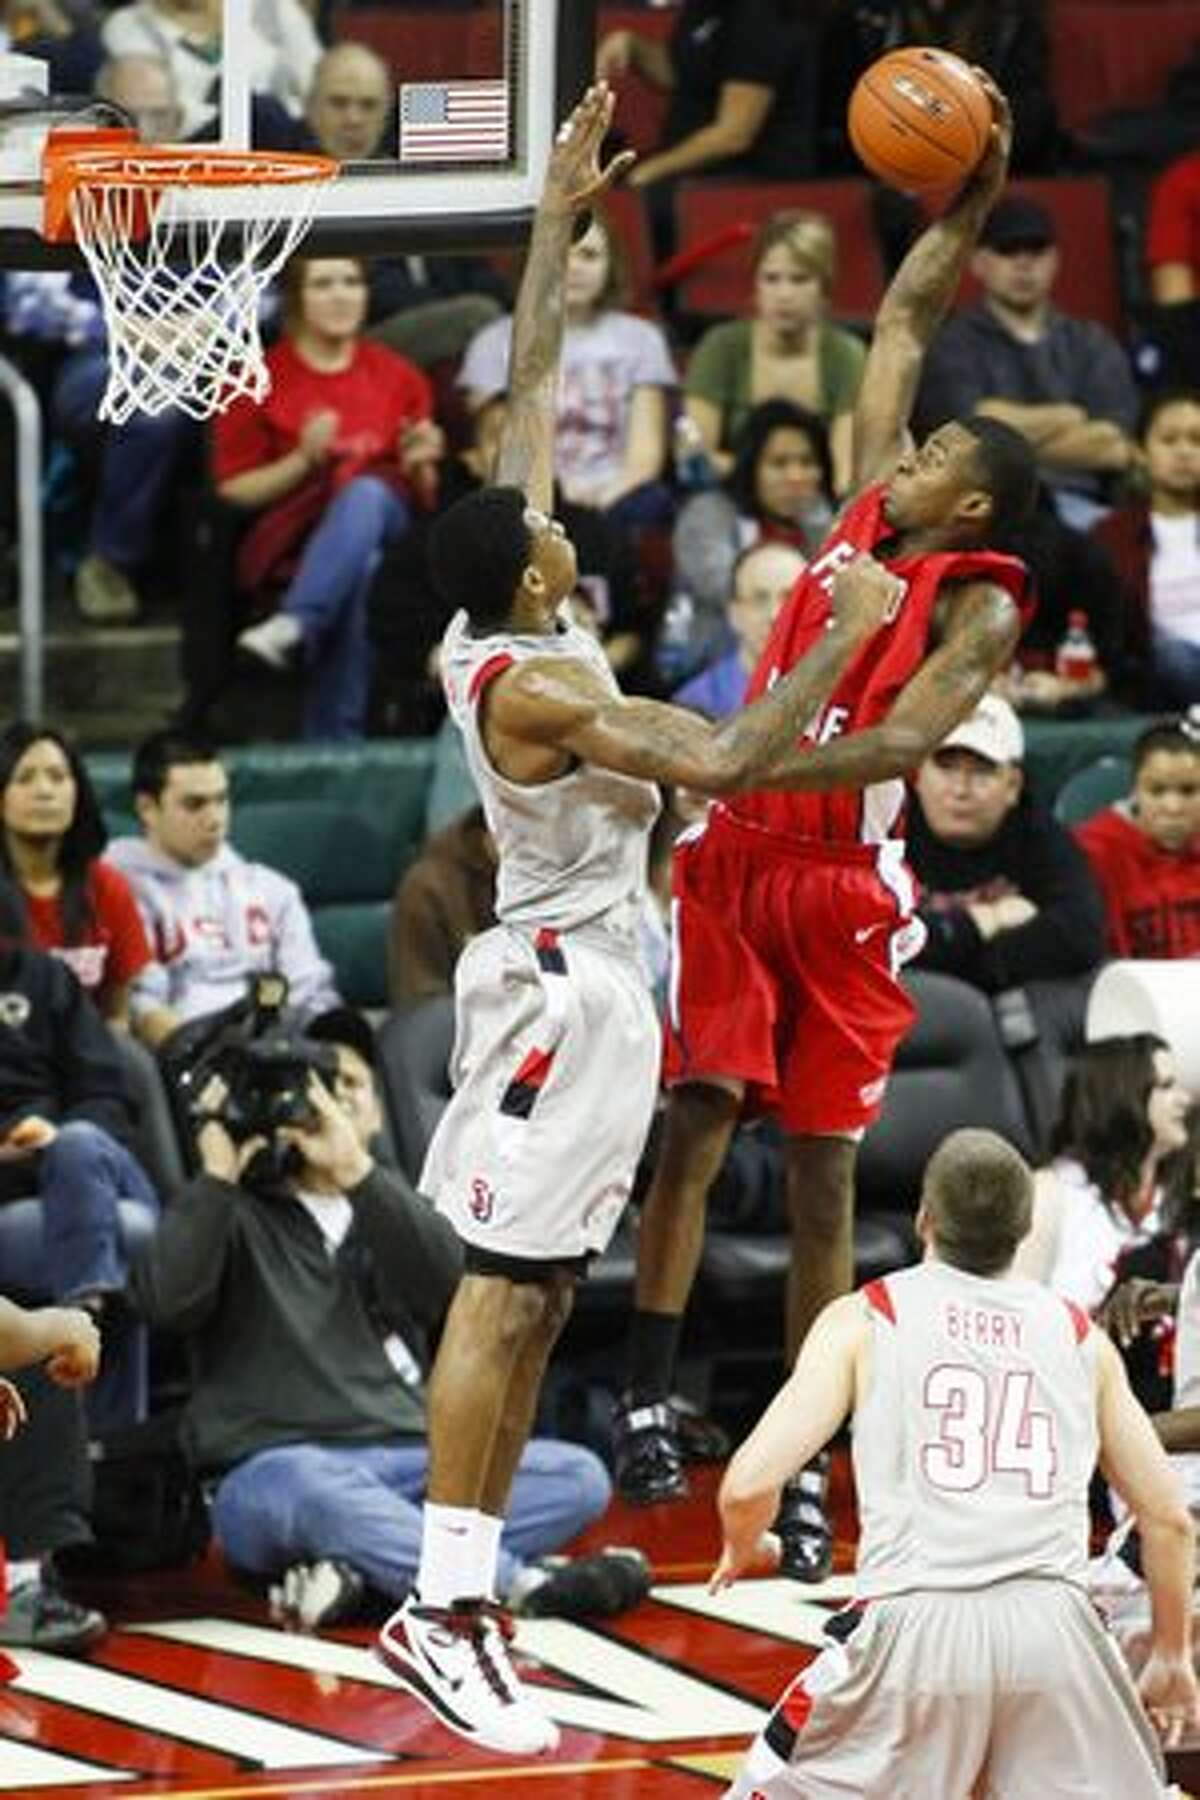 Charles Garcia blocks a shot from Fresno State. The Redhawks won the home opener 85-84 in the final seconds.